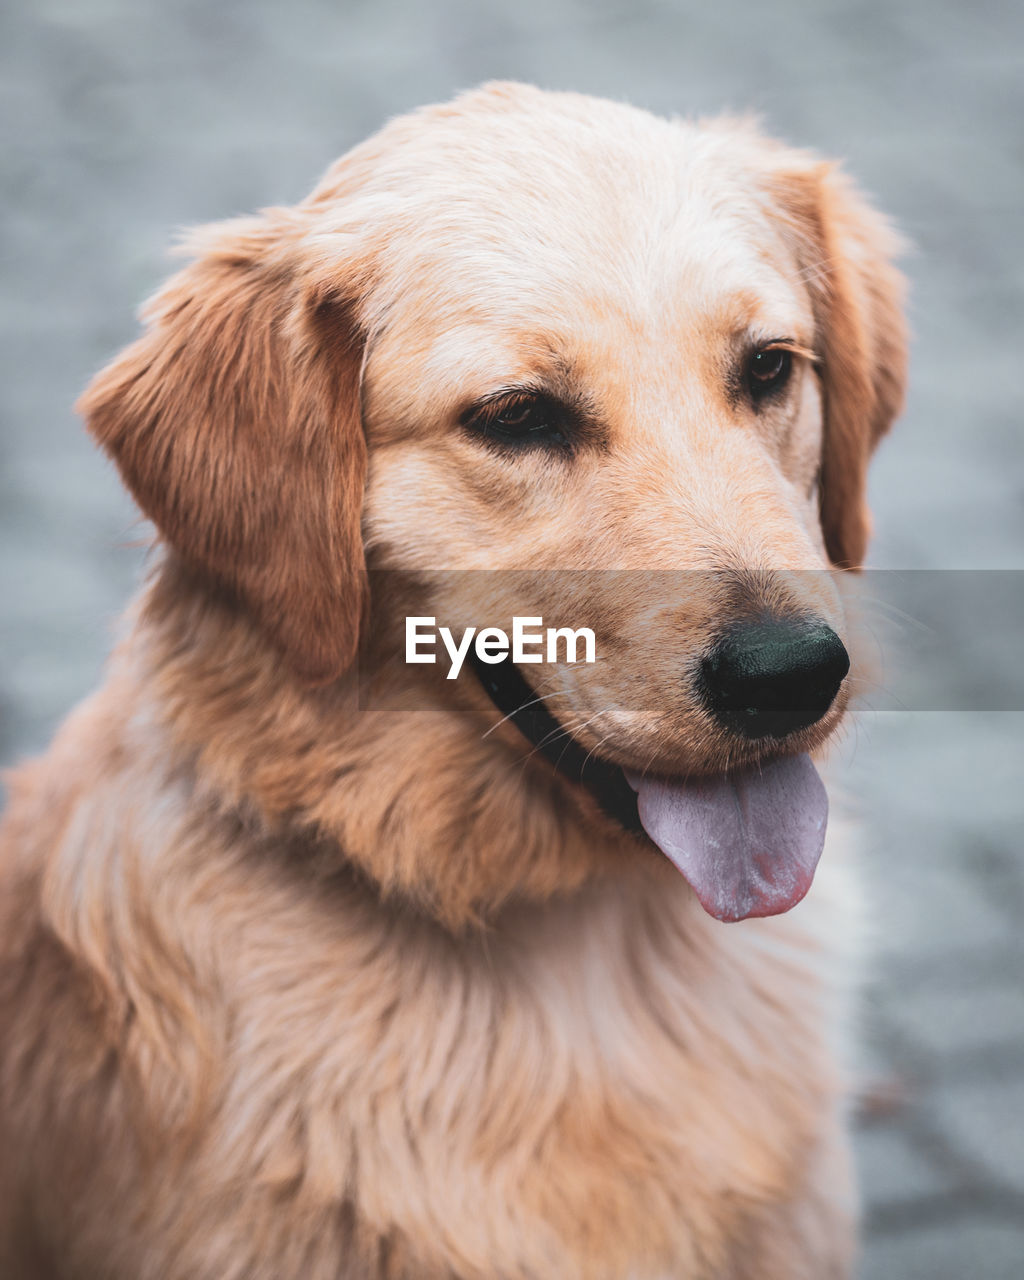 dog, canine, one animal, animal themes, mammal, animal, pets, domestic, vertebrate, domestic animals, focus on foreground, brown, close-up, looking, looking away, no people, retriever, day, animal body part, animal head, mouth open, snout